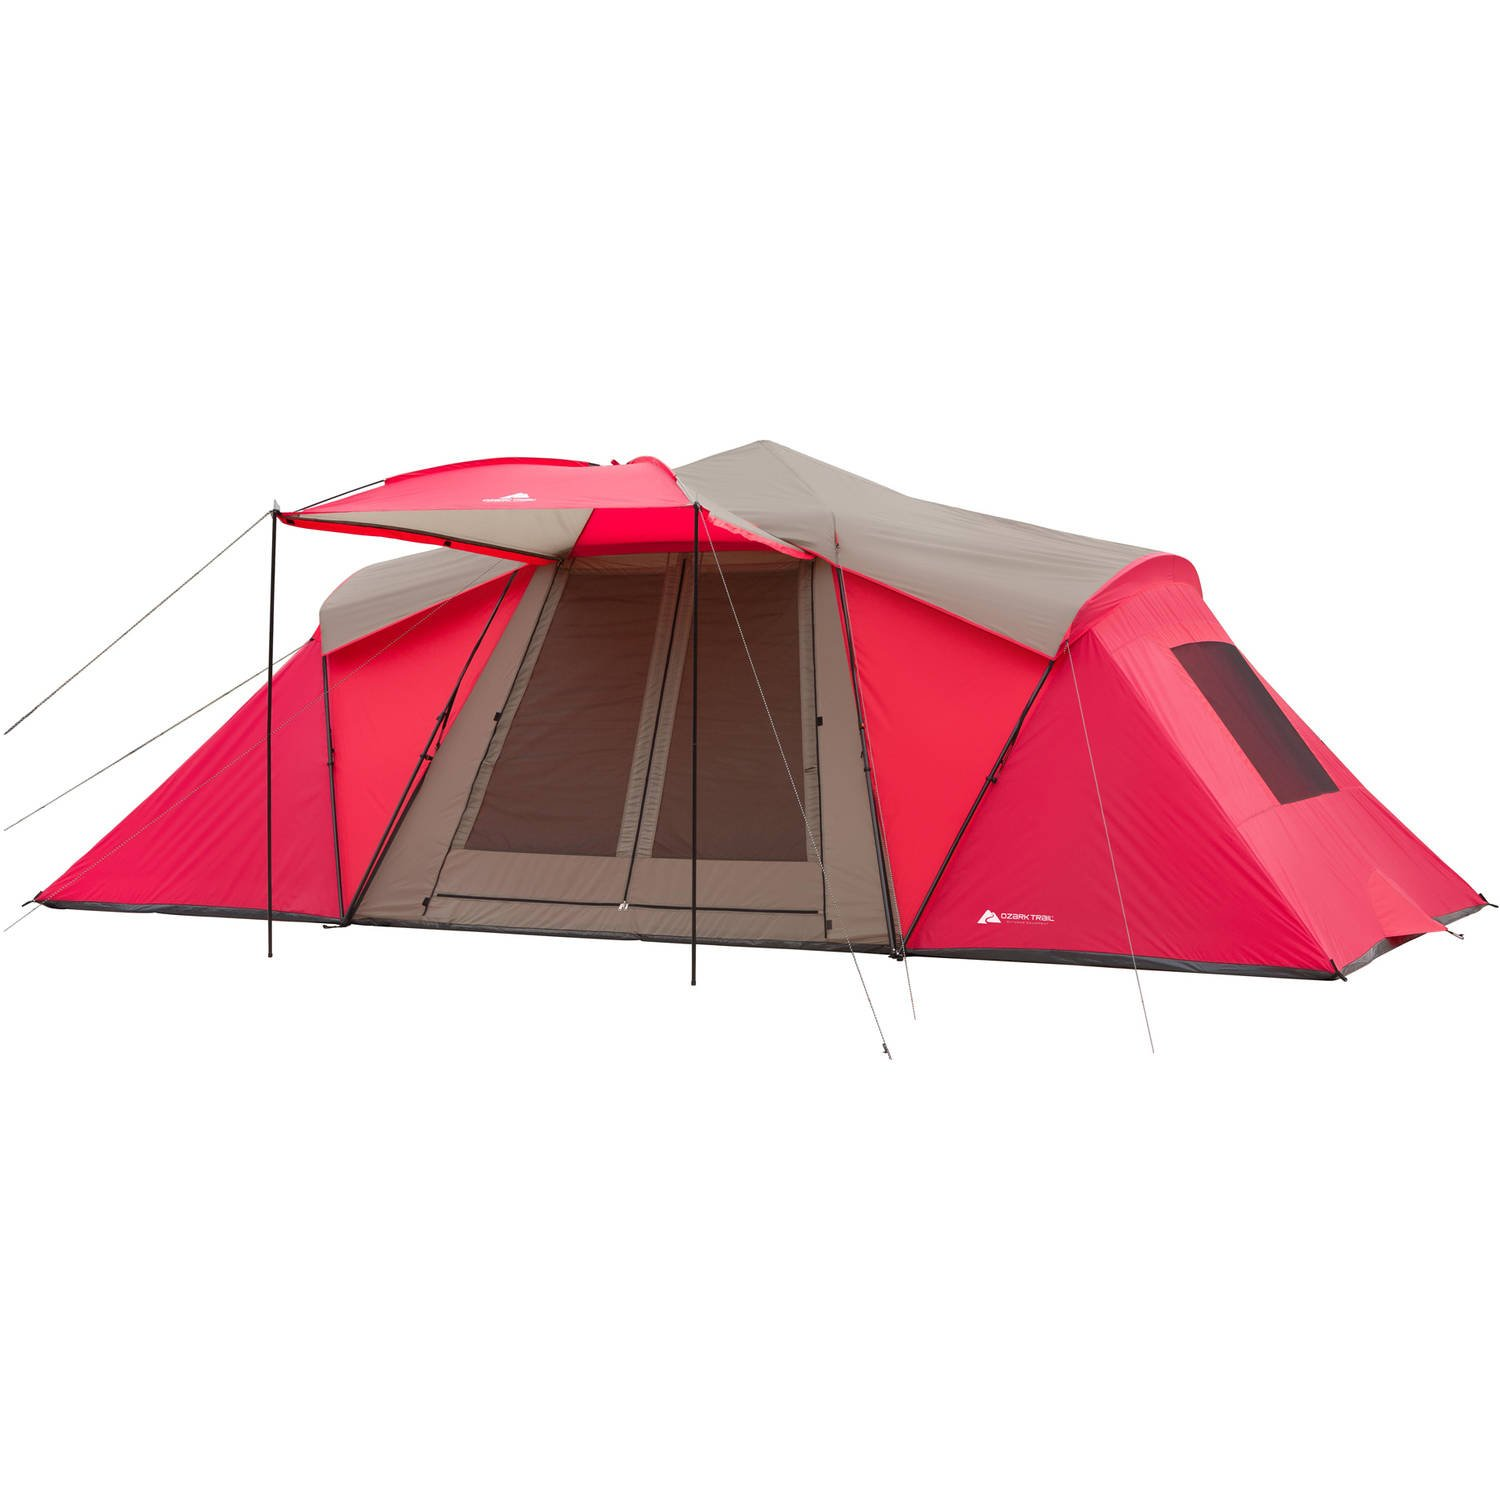 Amazon.com Ozark Trail 12 Person 3 Room Hybrid Instant Tent with Awning Cell Phones u0026 Accessories  sc 1 st  Amazon.com : 12 person instant tent - memphite.com